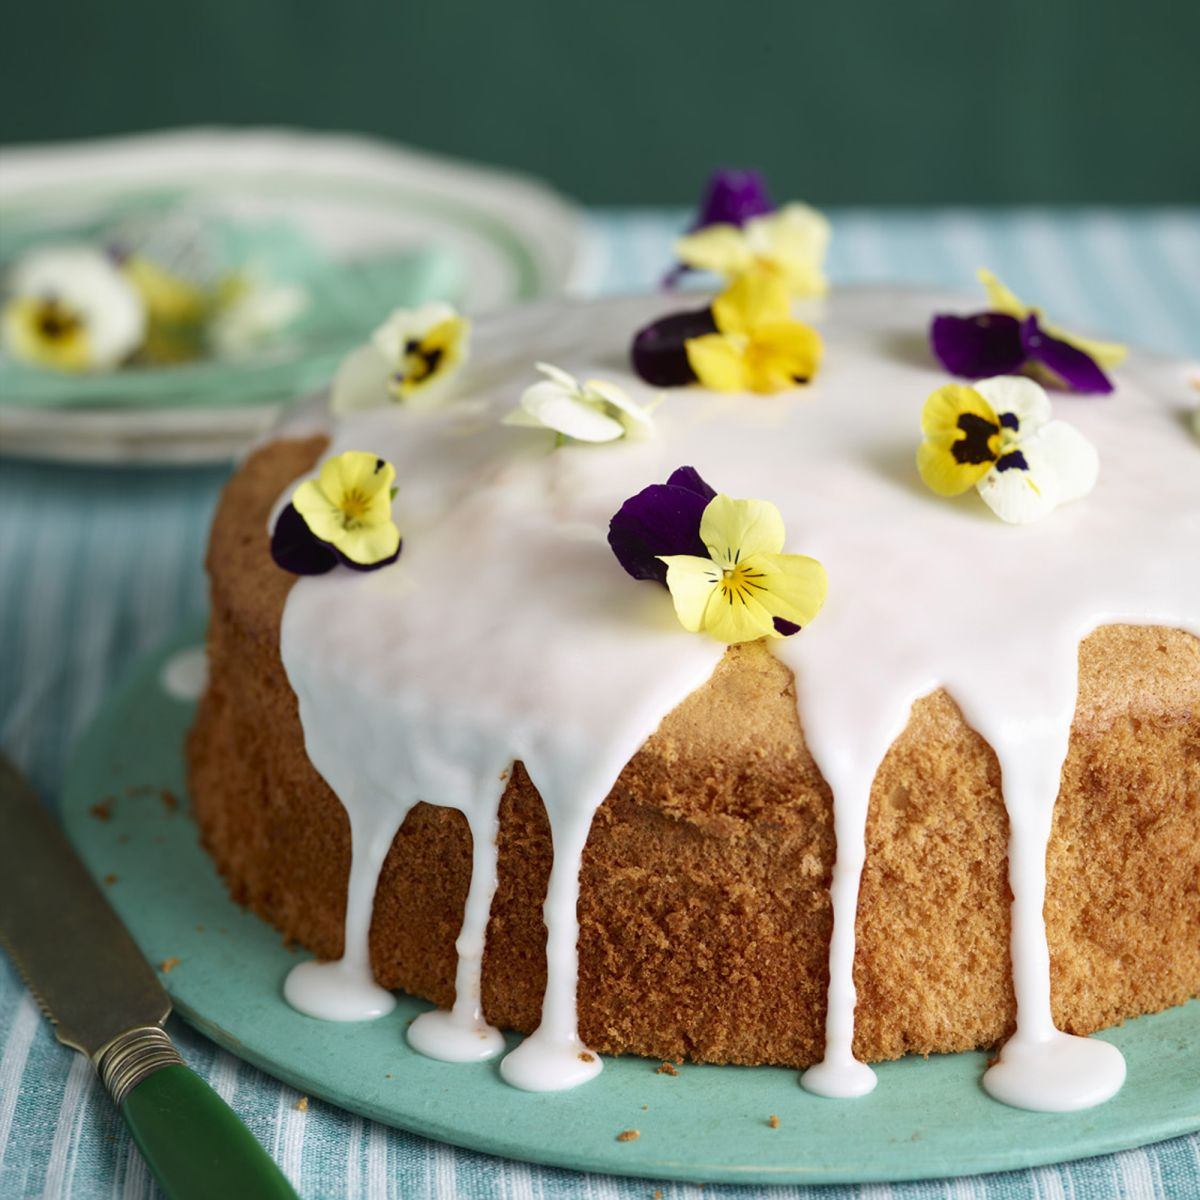 This lemon chiffon cake is super light and lovely